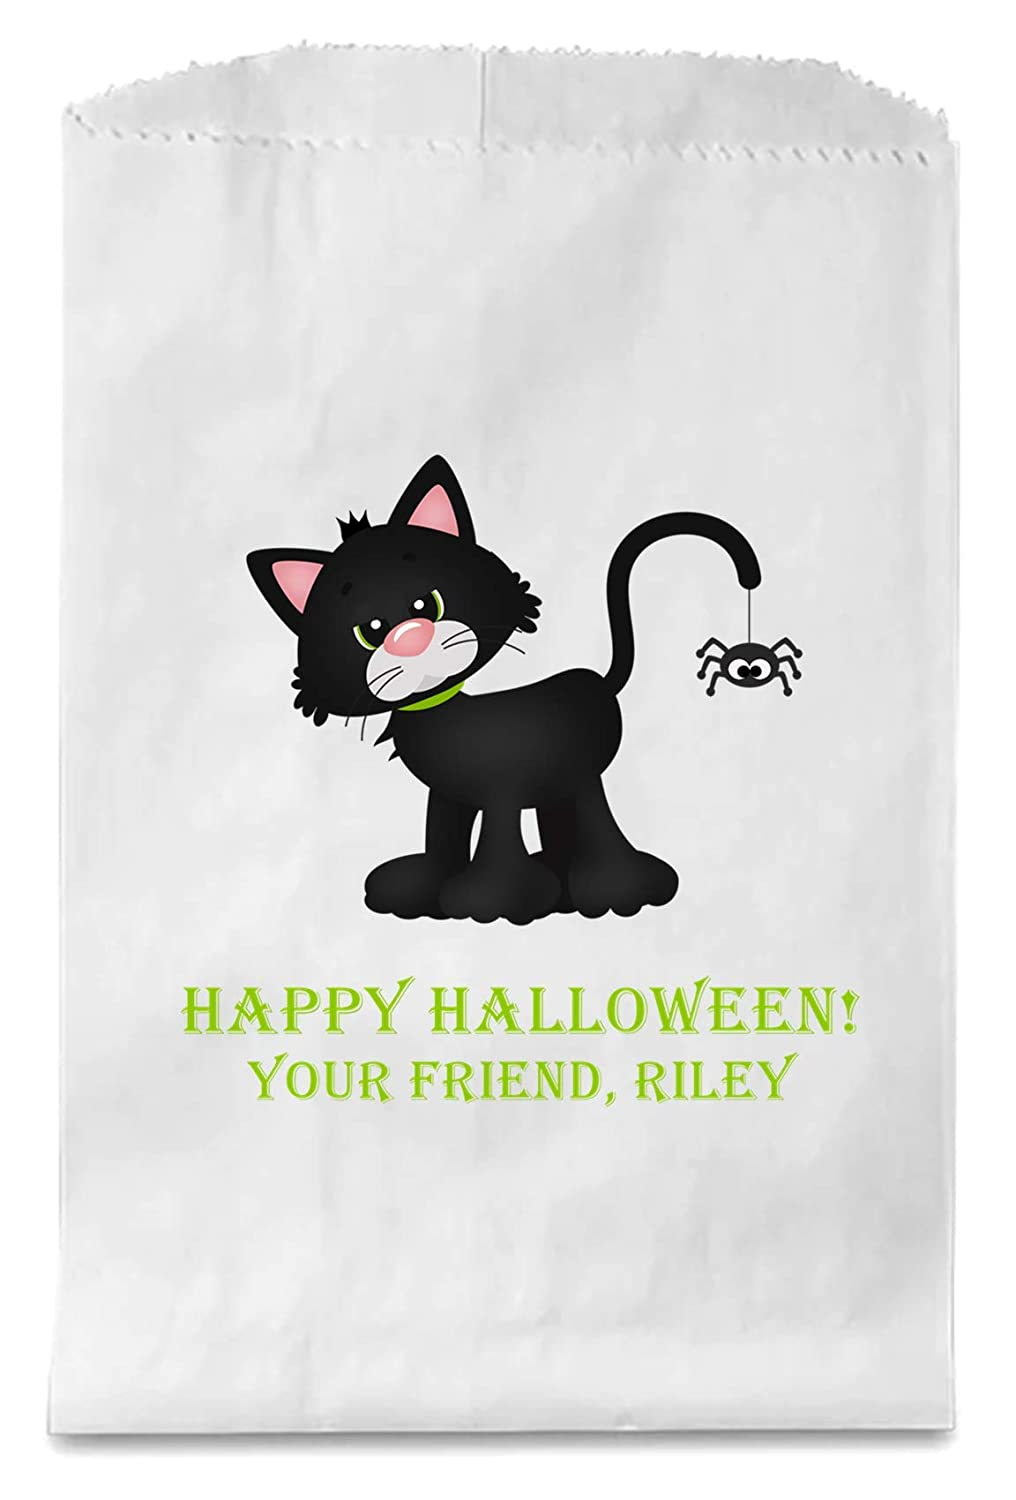 Cat Favour Bags halloween decorations halloween lolly bags Halloween candy bag Black Cat calico bags cat party bagsx 10